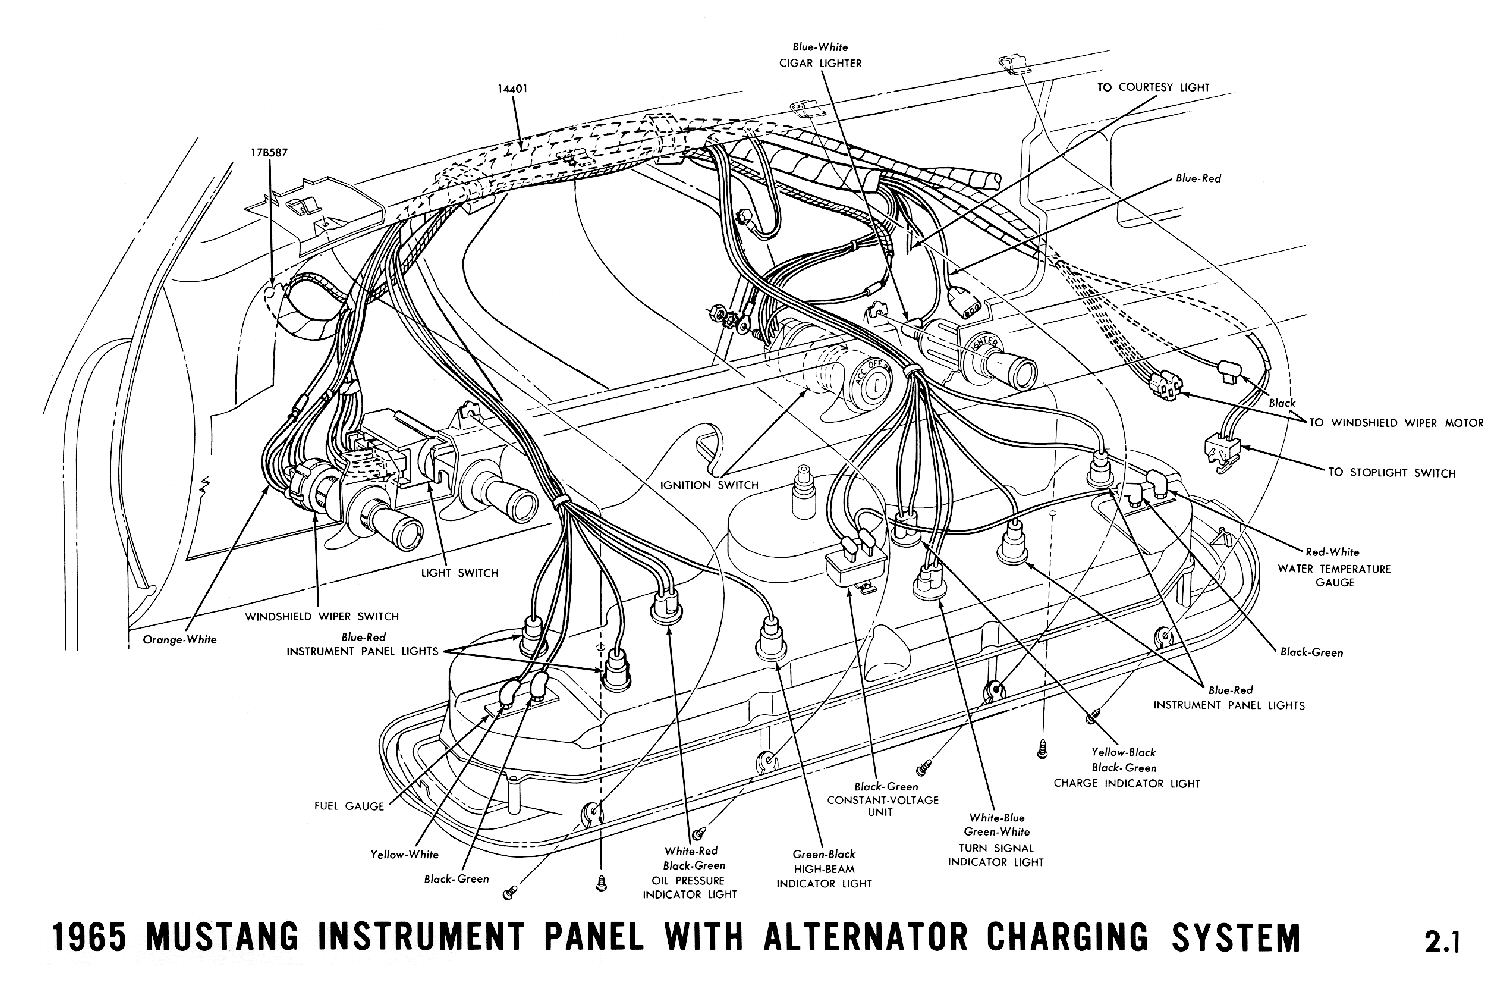 65 66 Mustang Dash Wiring Harness - Wiring Diagram Site Ferrari Dash Wiring Diagram on